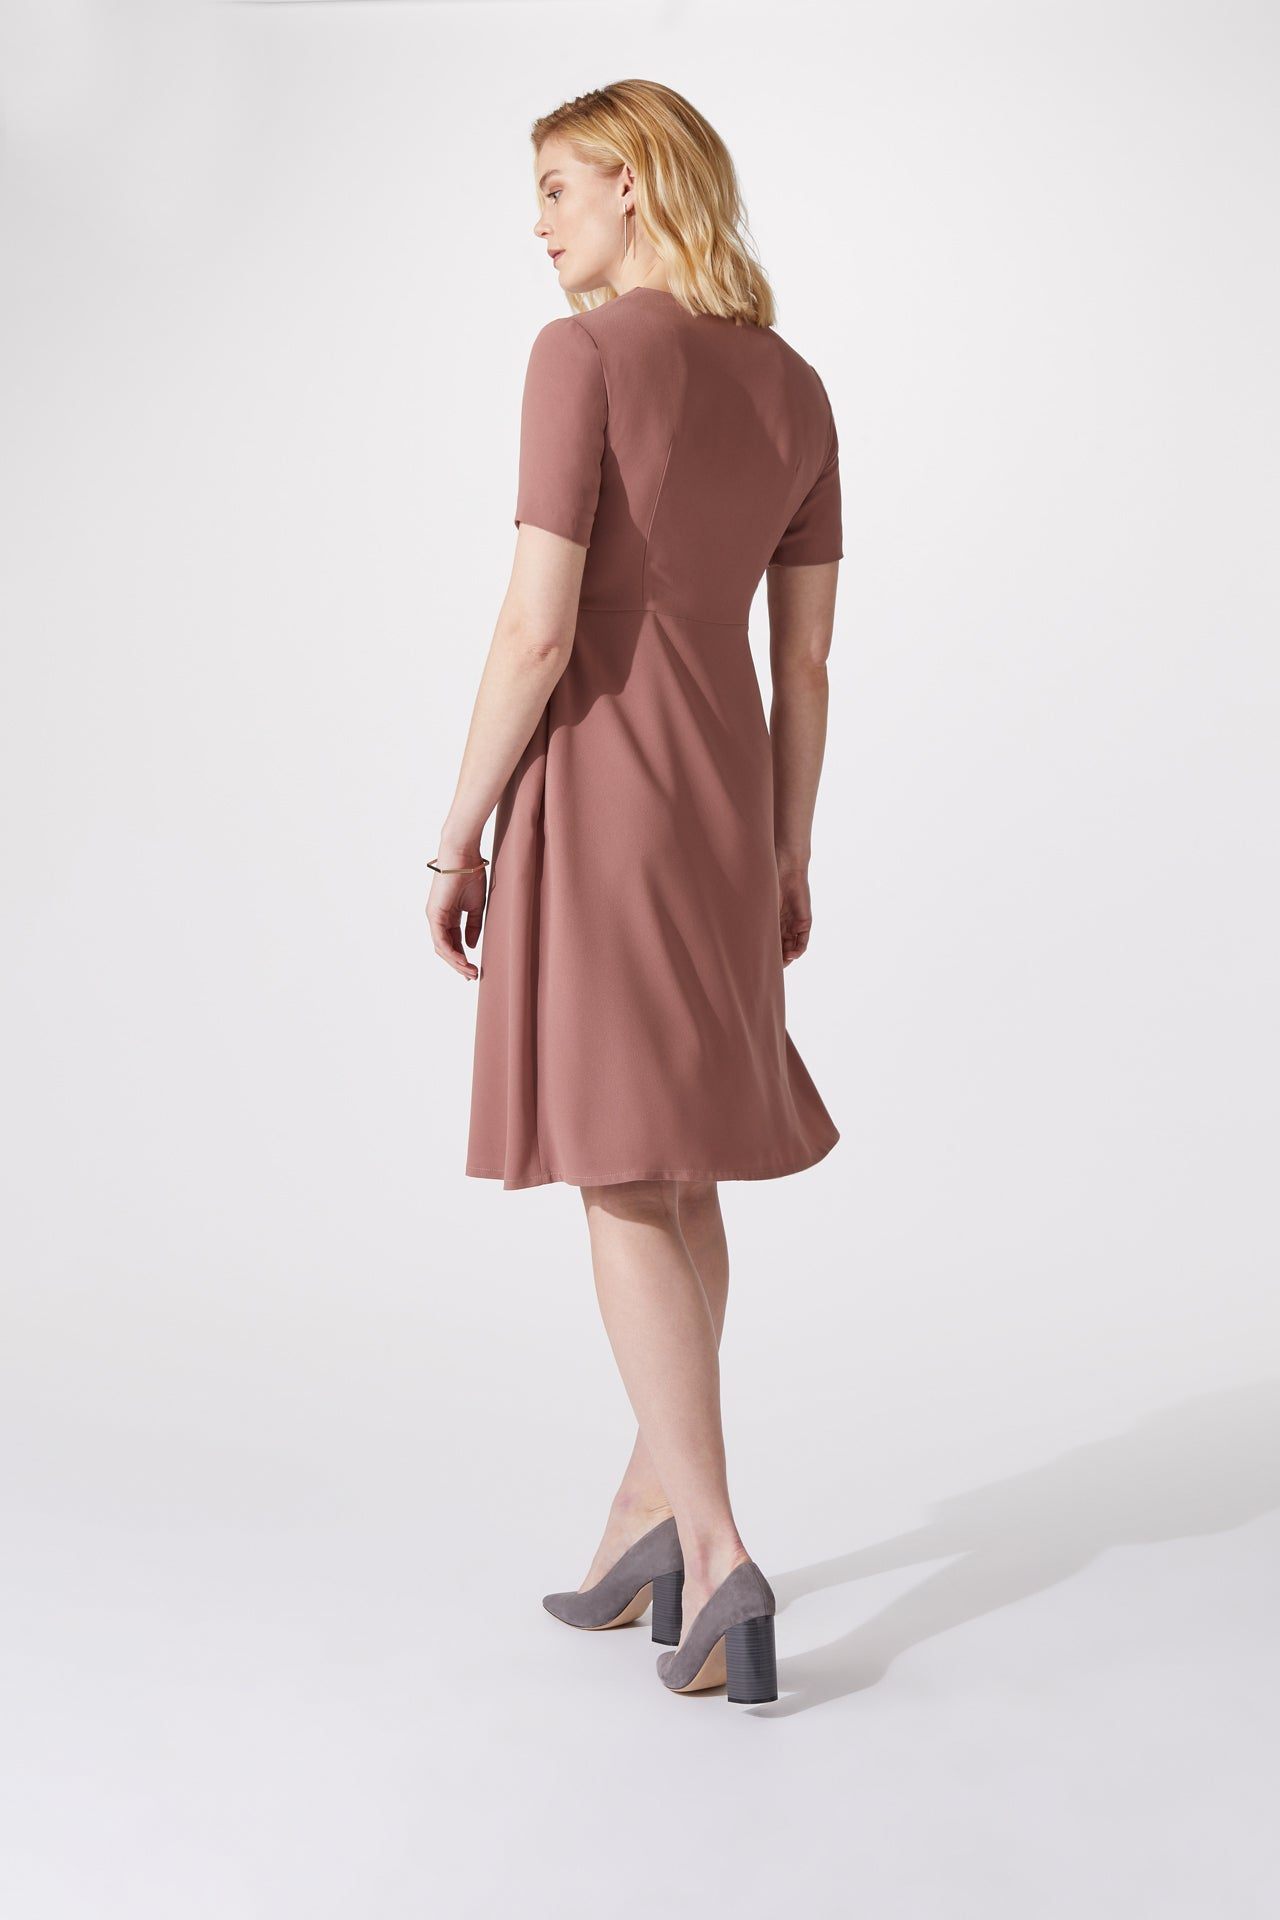 Chiswick Teal Dress